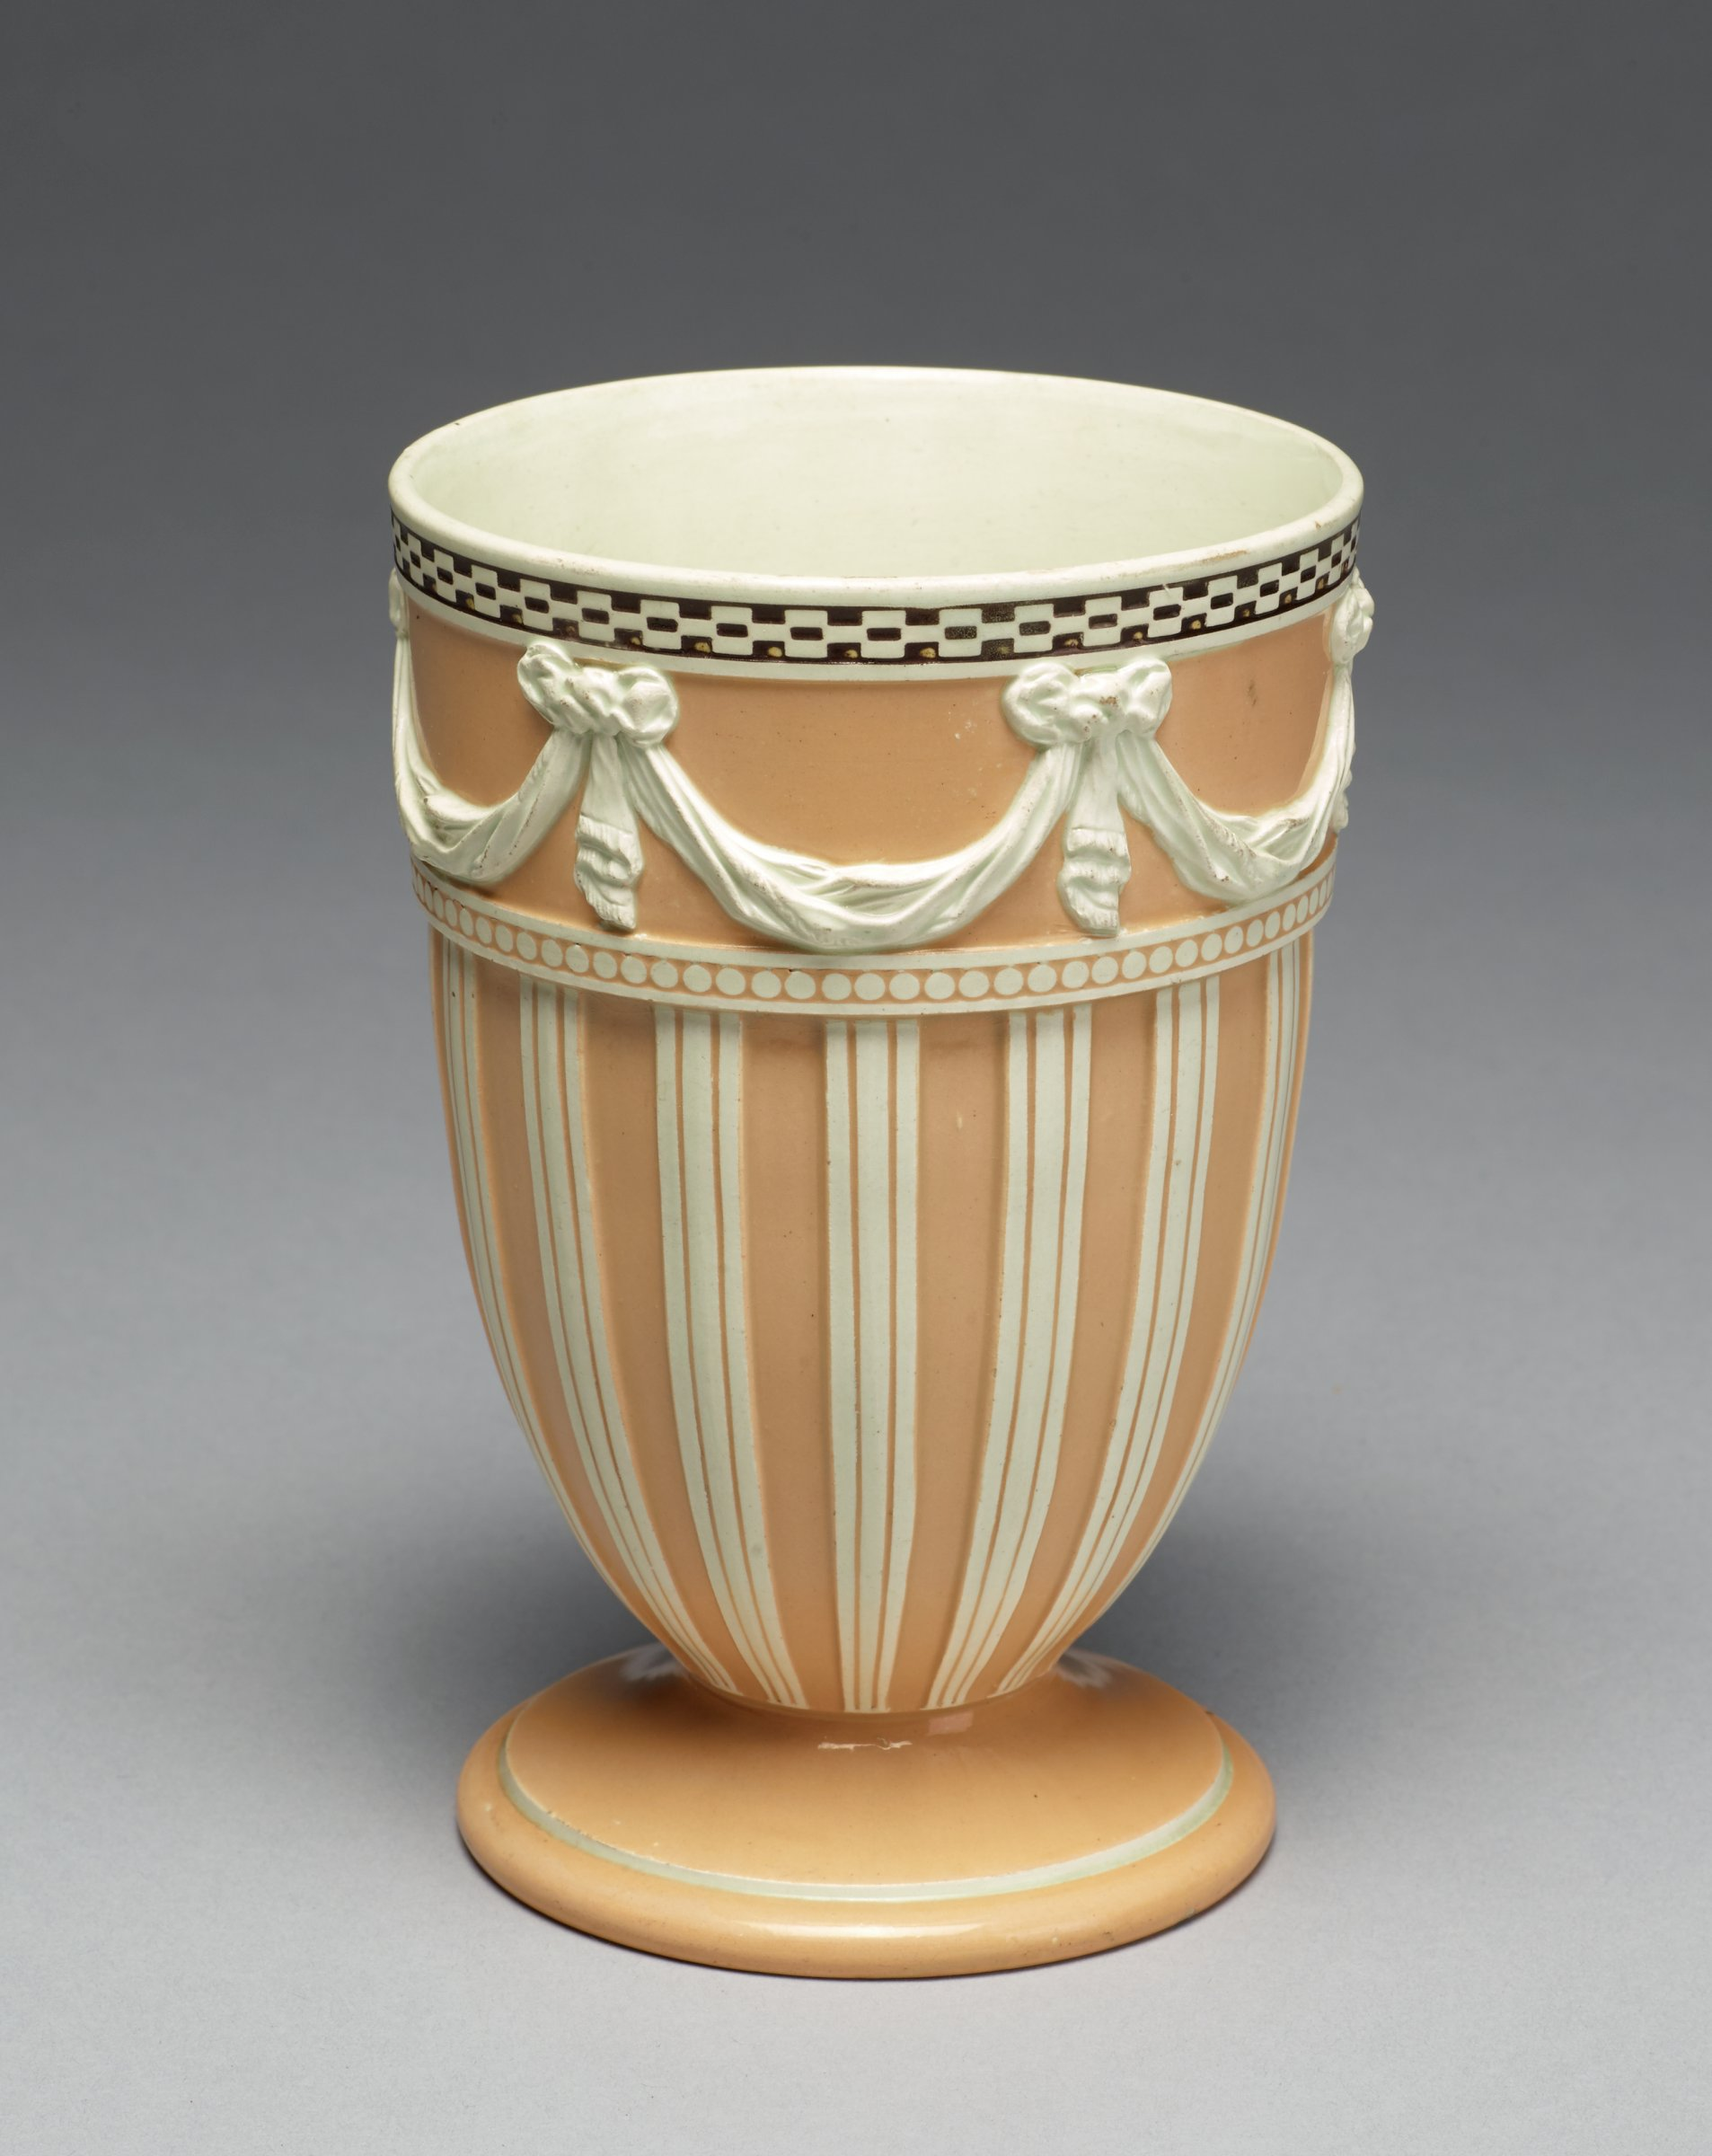 Vase of goblet shape on round foot, of white stoneware covered with a yellow glaze, the main body with yellow and white stripes, above a band of beading and against a yellow ground a band of molded swags, immediately below the lip a band of black and white checkerboard pattern, the interior white.